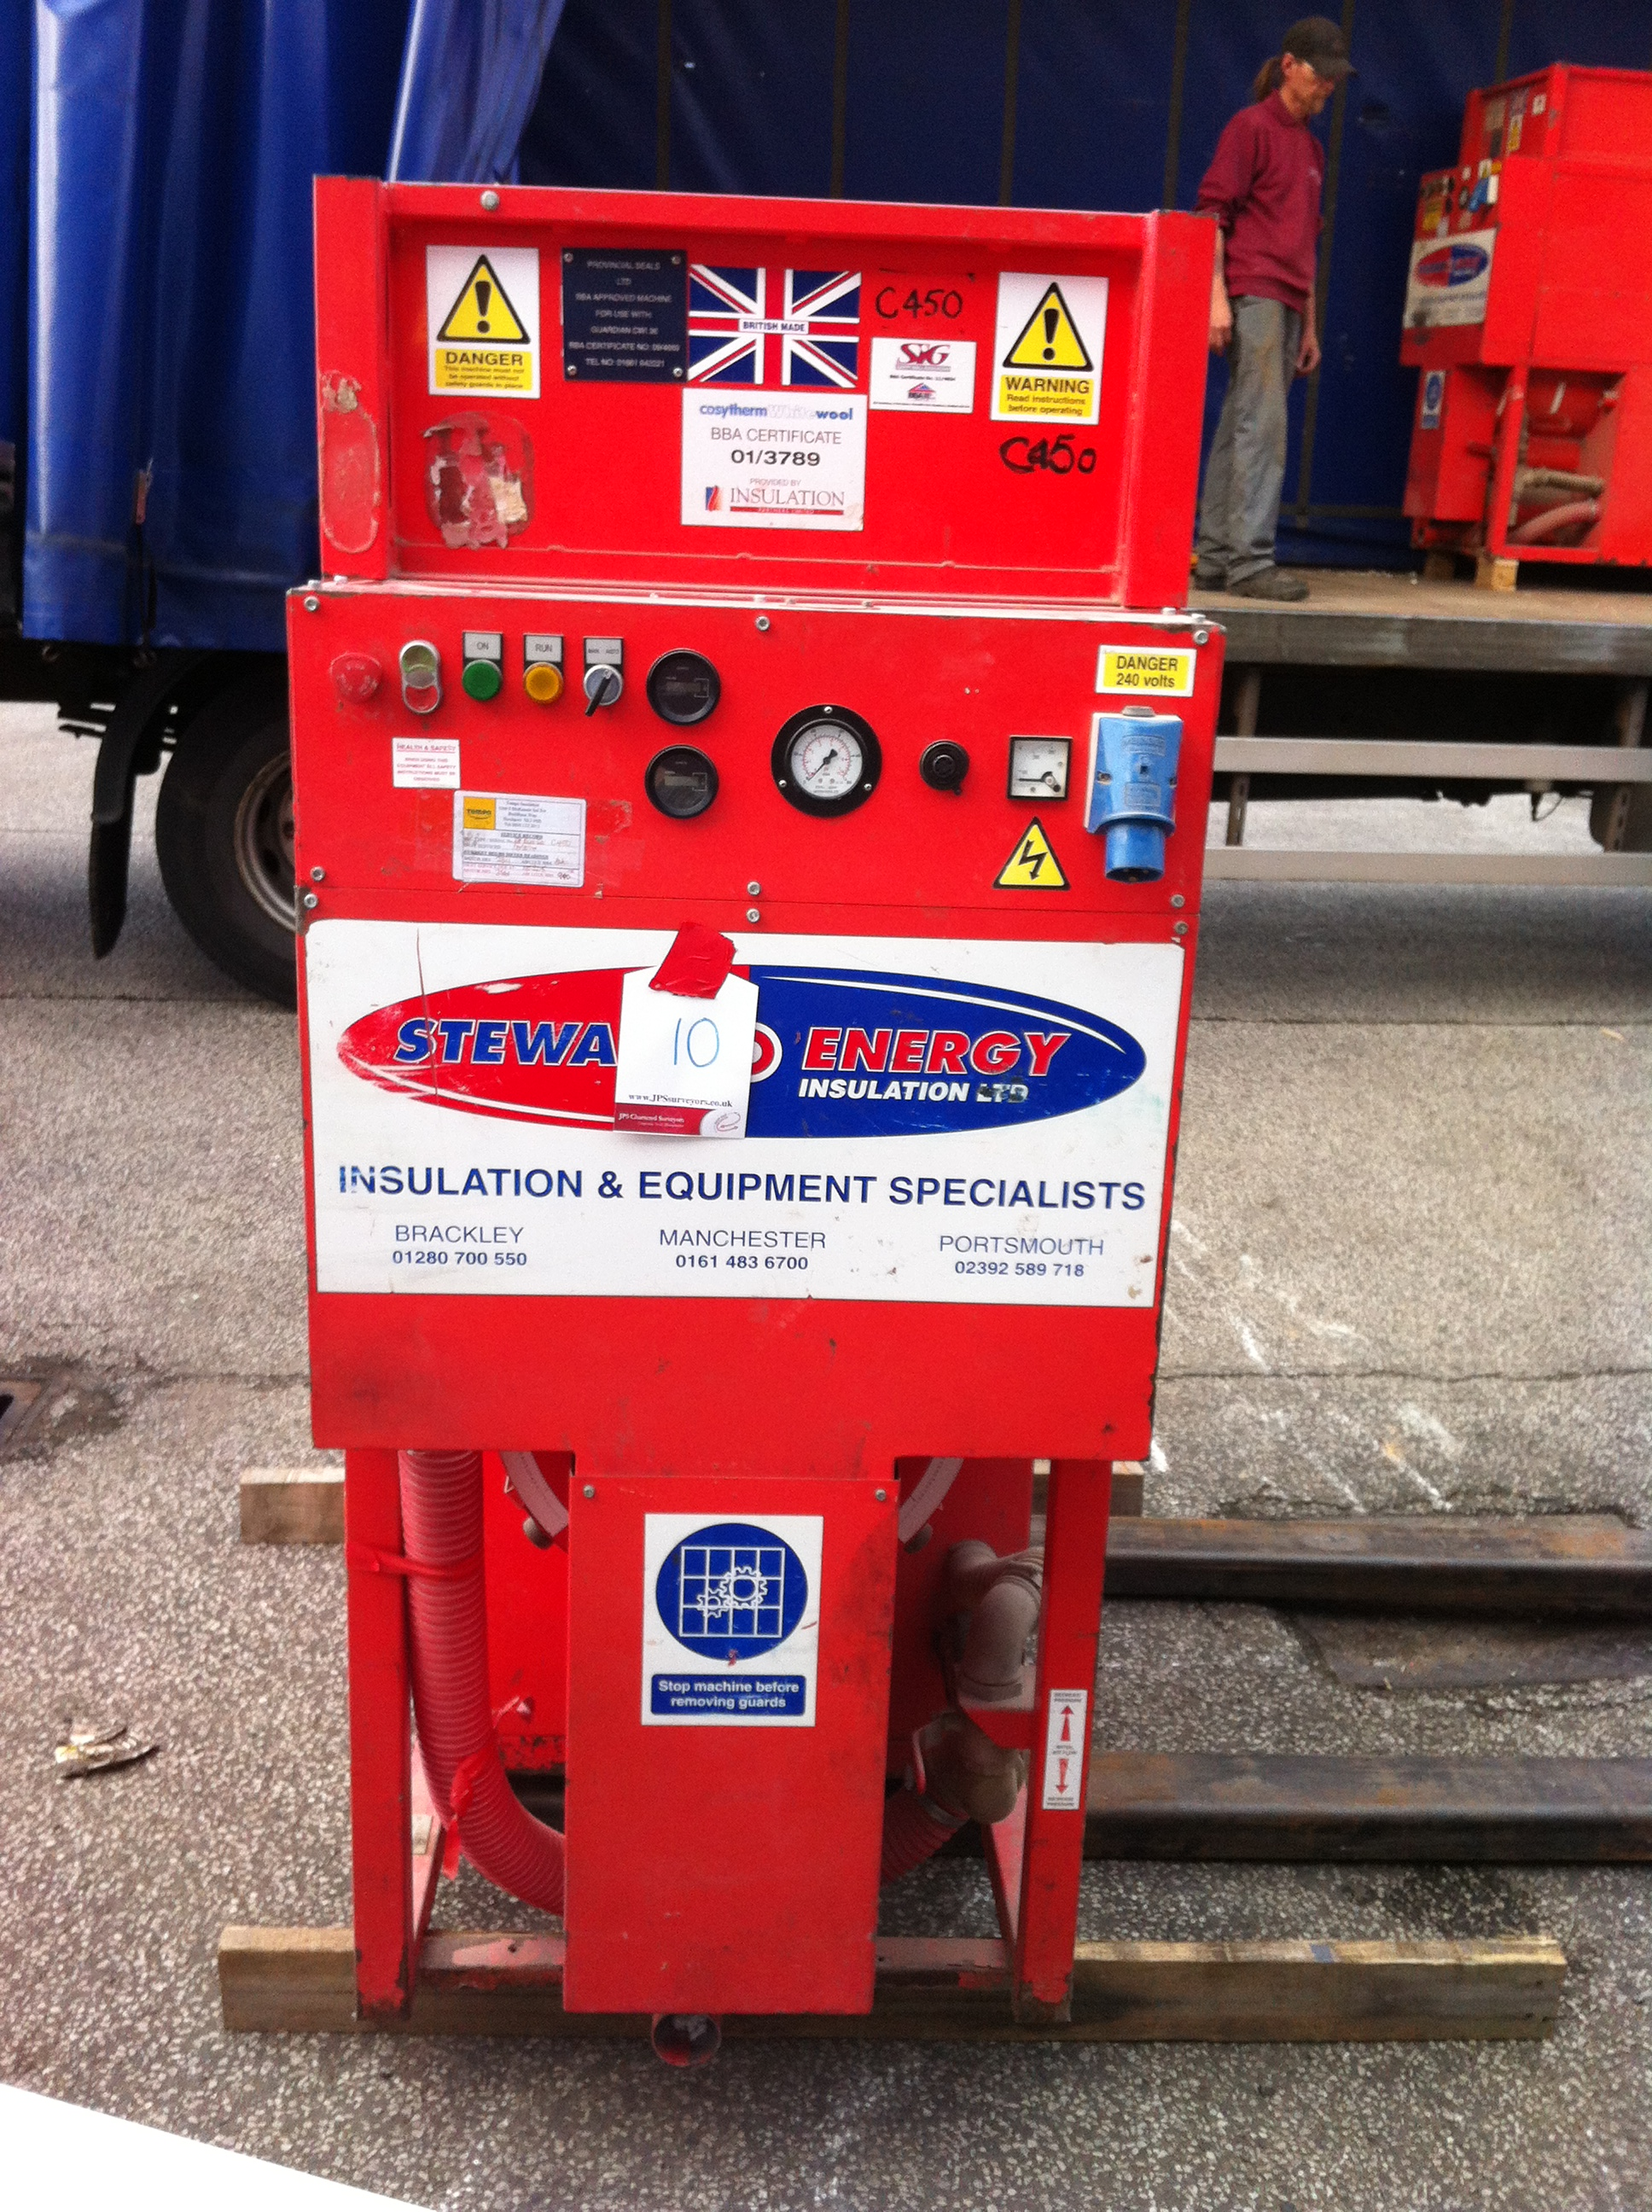 Stuart Energy Cavity Wall Insulation Machine - SE500/C450